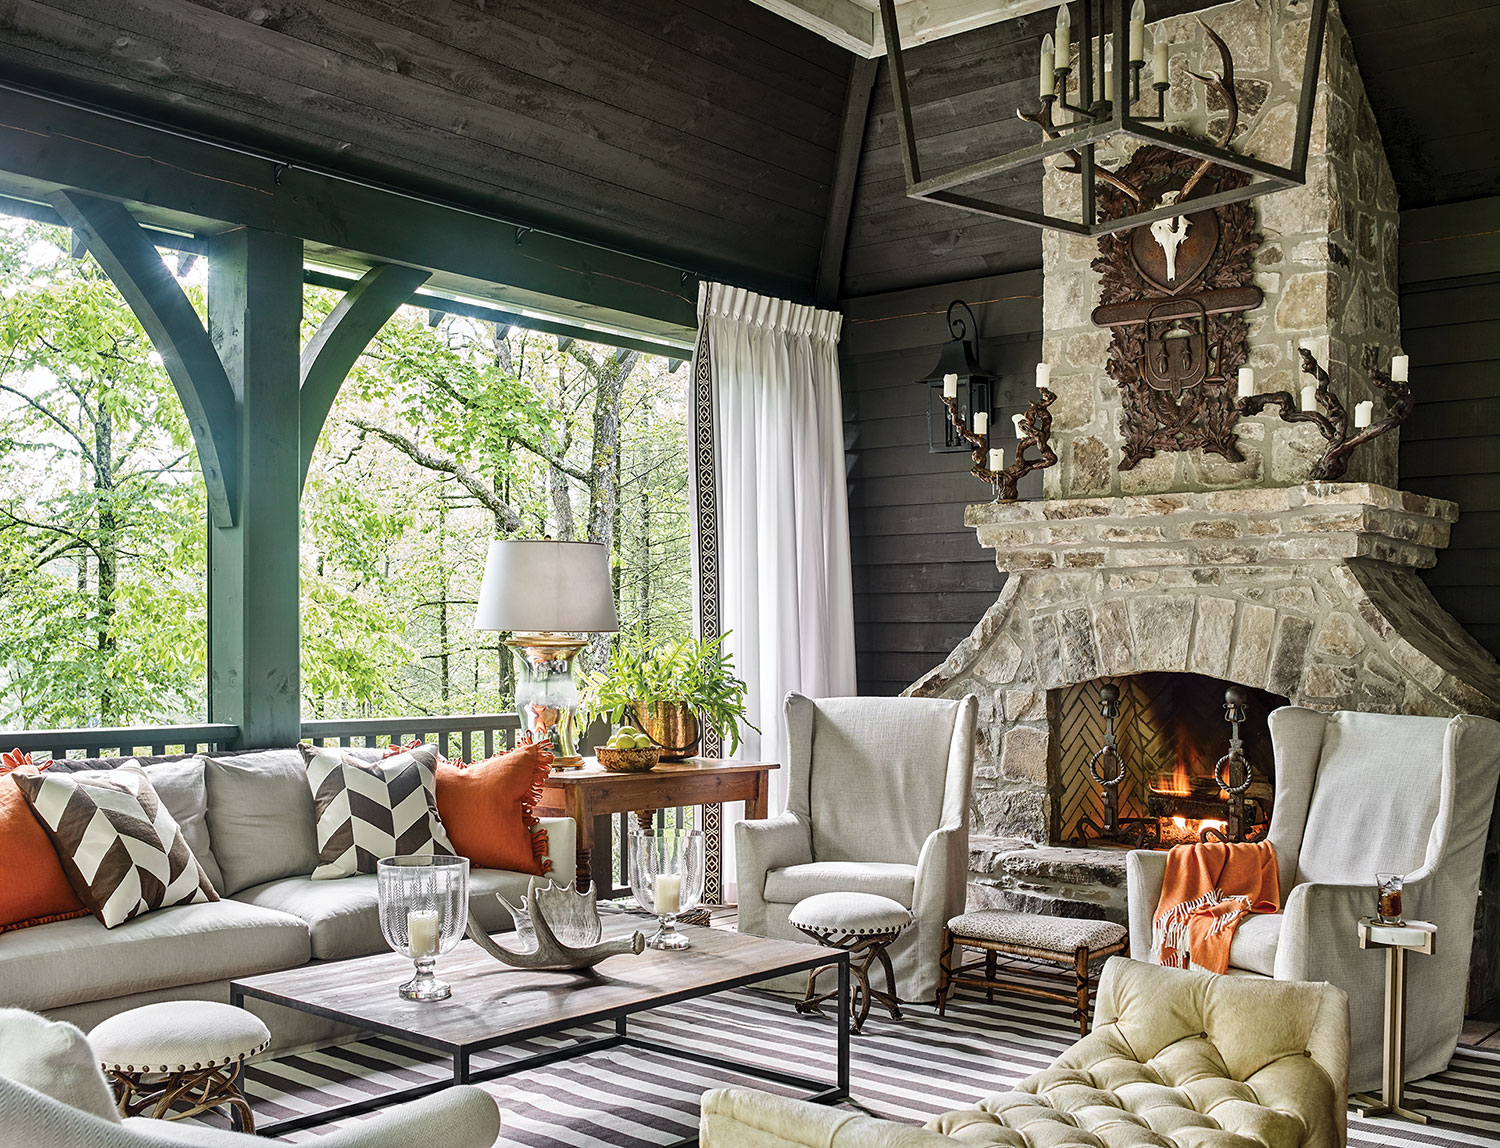 Chic mountain house design ideas - Flower Magazine